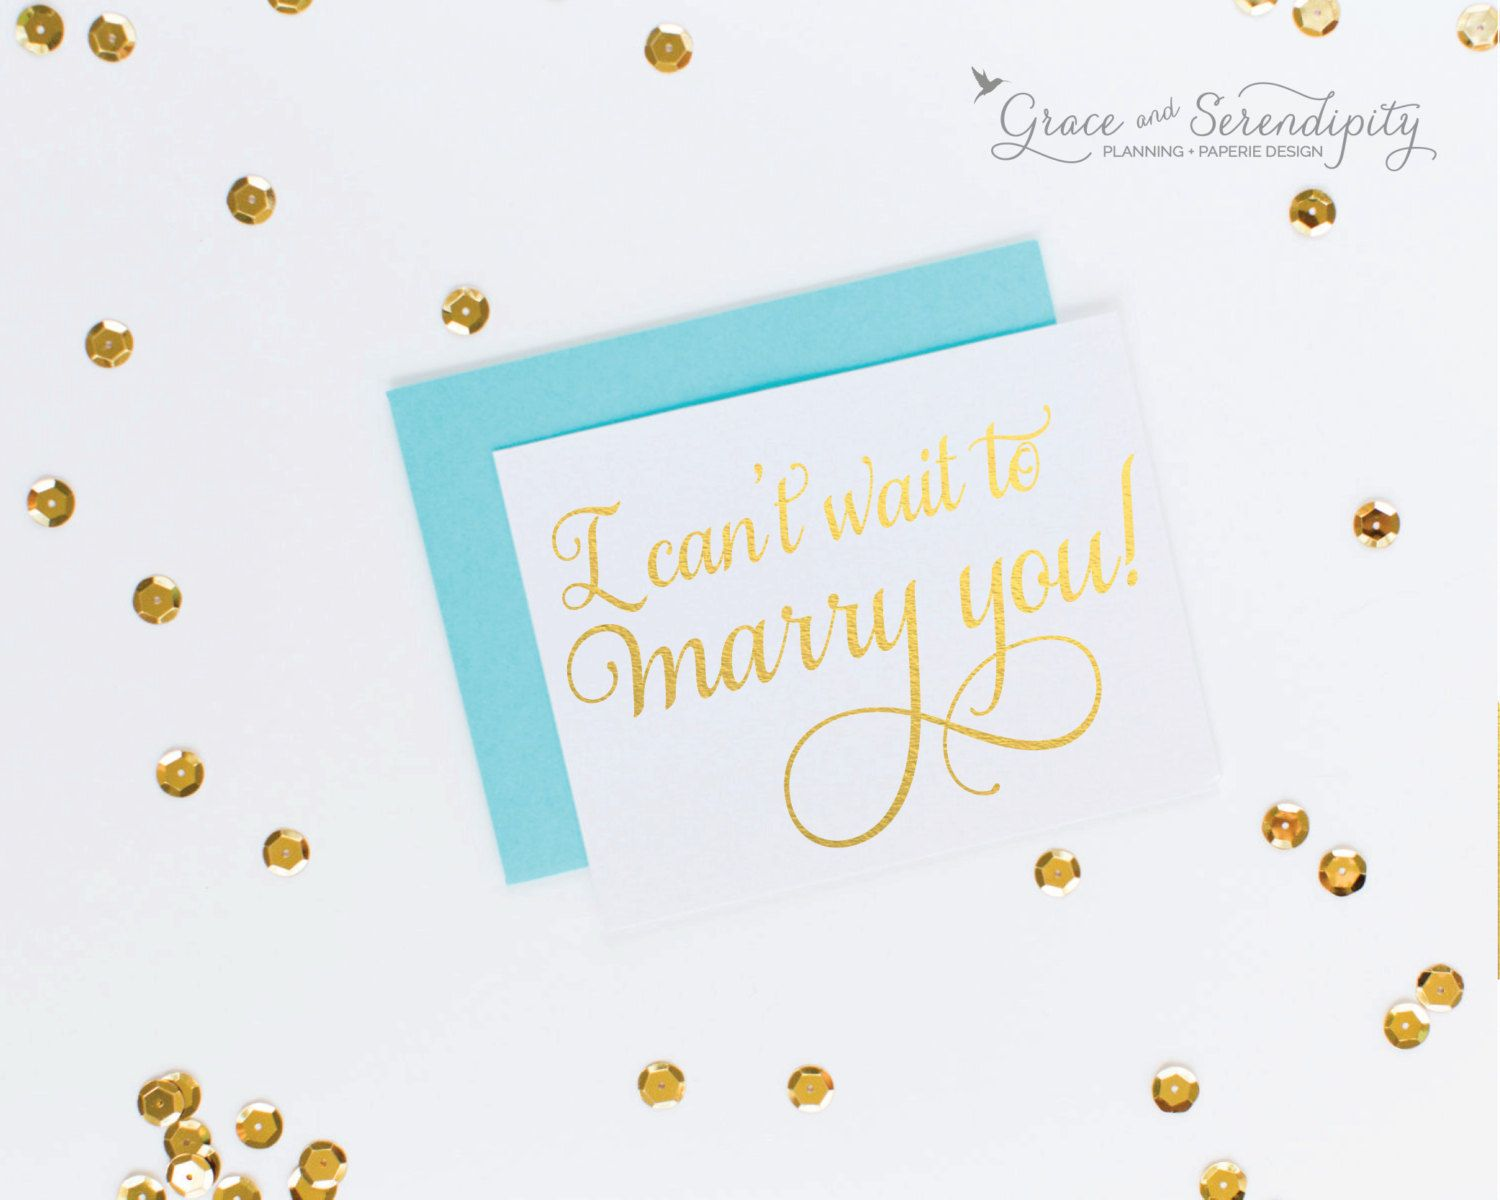 Wedding day cards for each other i can t wait to marry you wedding day - New To Graceserendipityshop On Etsy Gold Foil I Can T Wait To Marry You